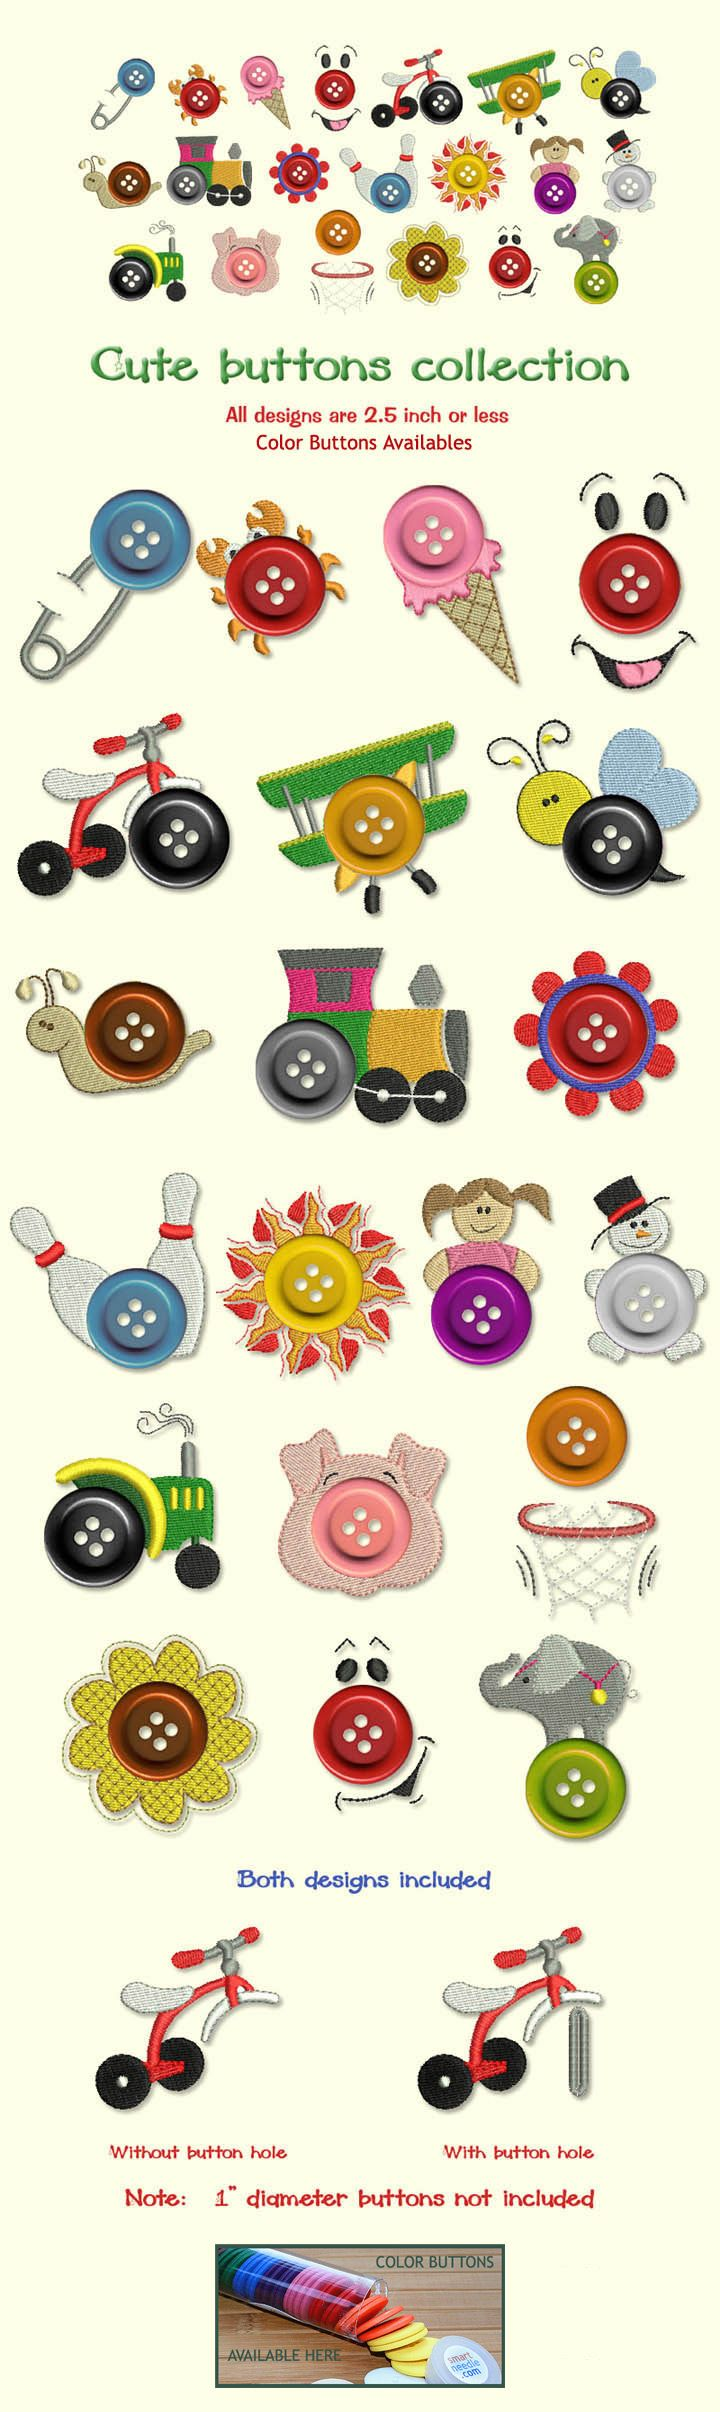 ButtonArtMuseum.com - Cute Buttons Miniature Embroidery Designs Free Embroidery Design Patterns Applique